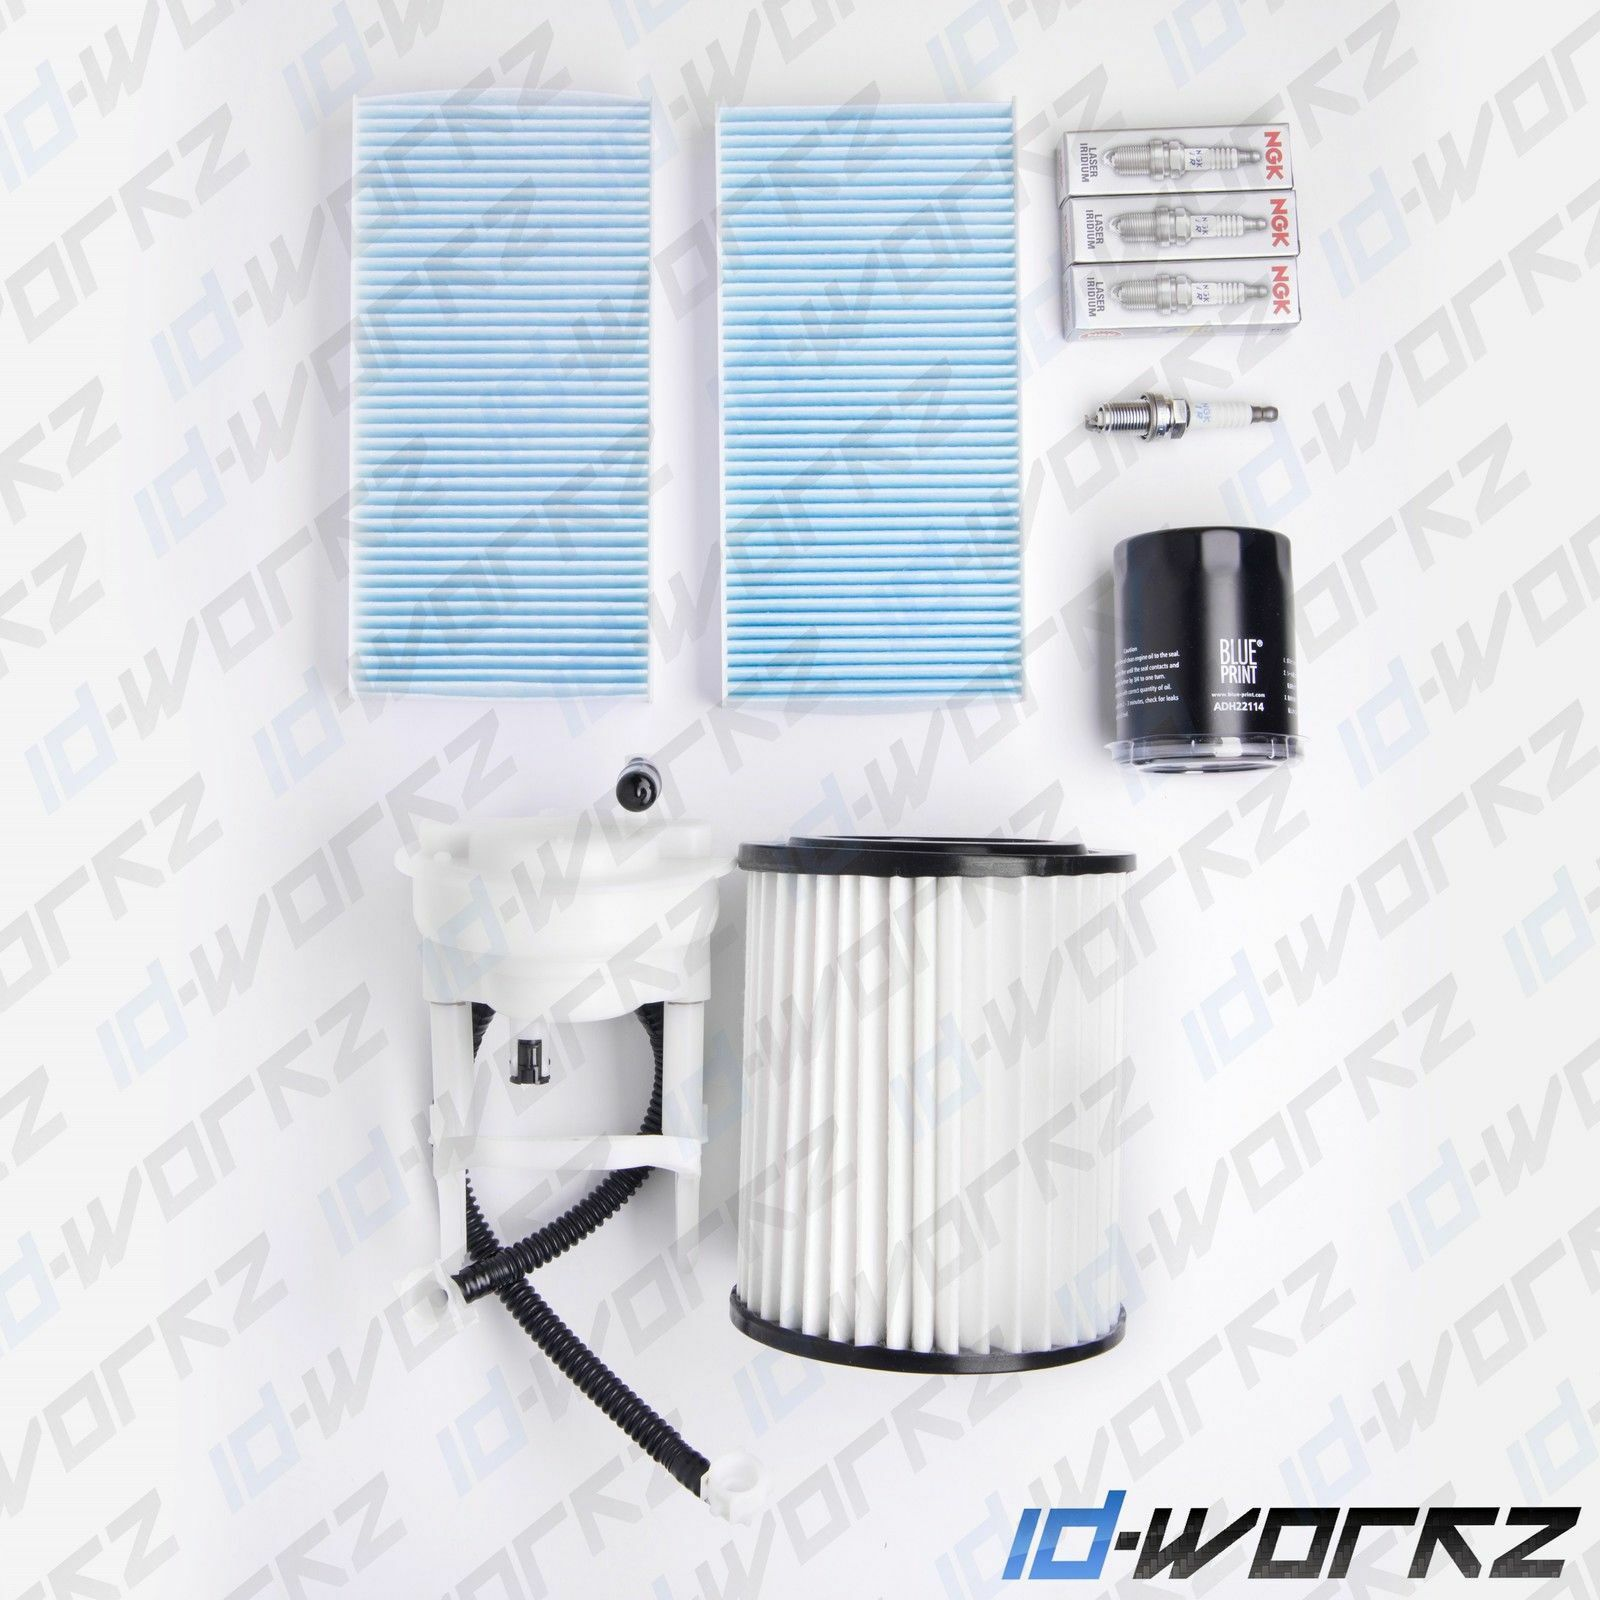 Honda Civic Type R 2.0 Ep3 Air Oil Cabin Fuel Filter Ngk Spark Plugs Service  Kit 1 of 1 See More